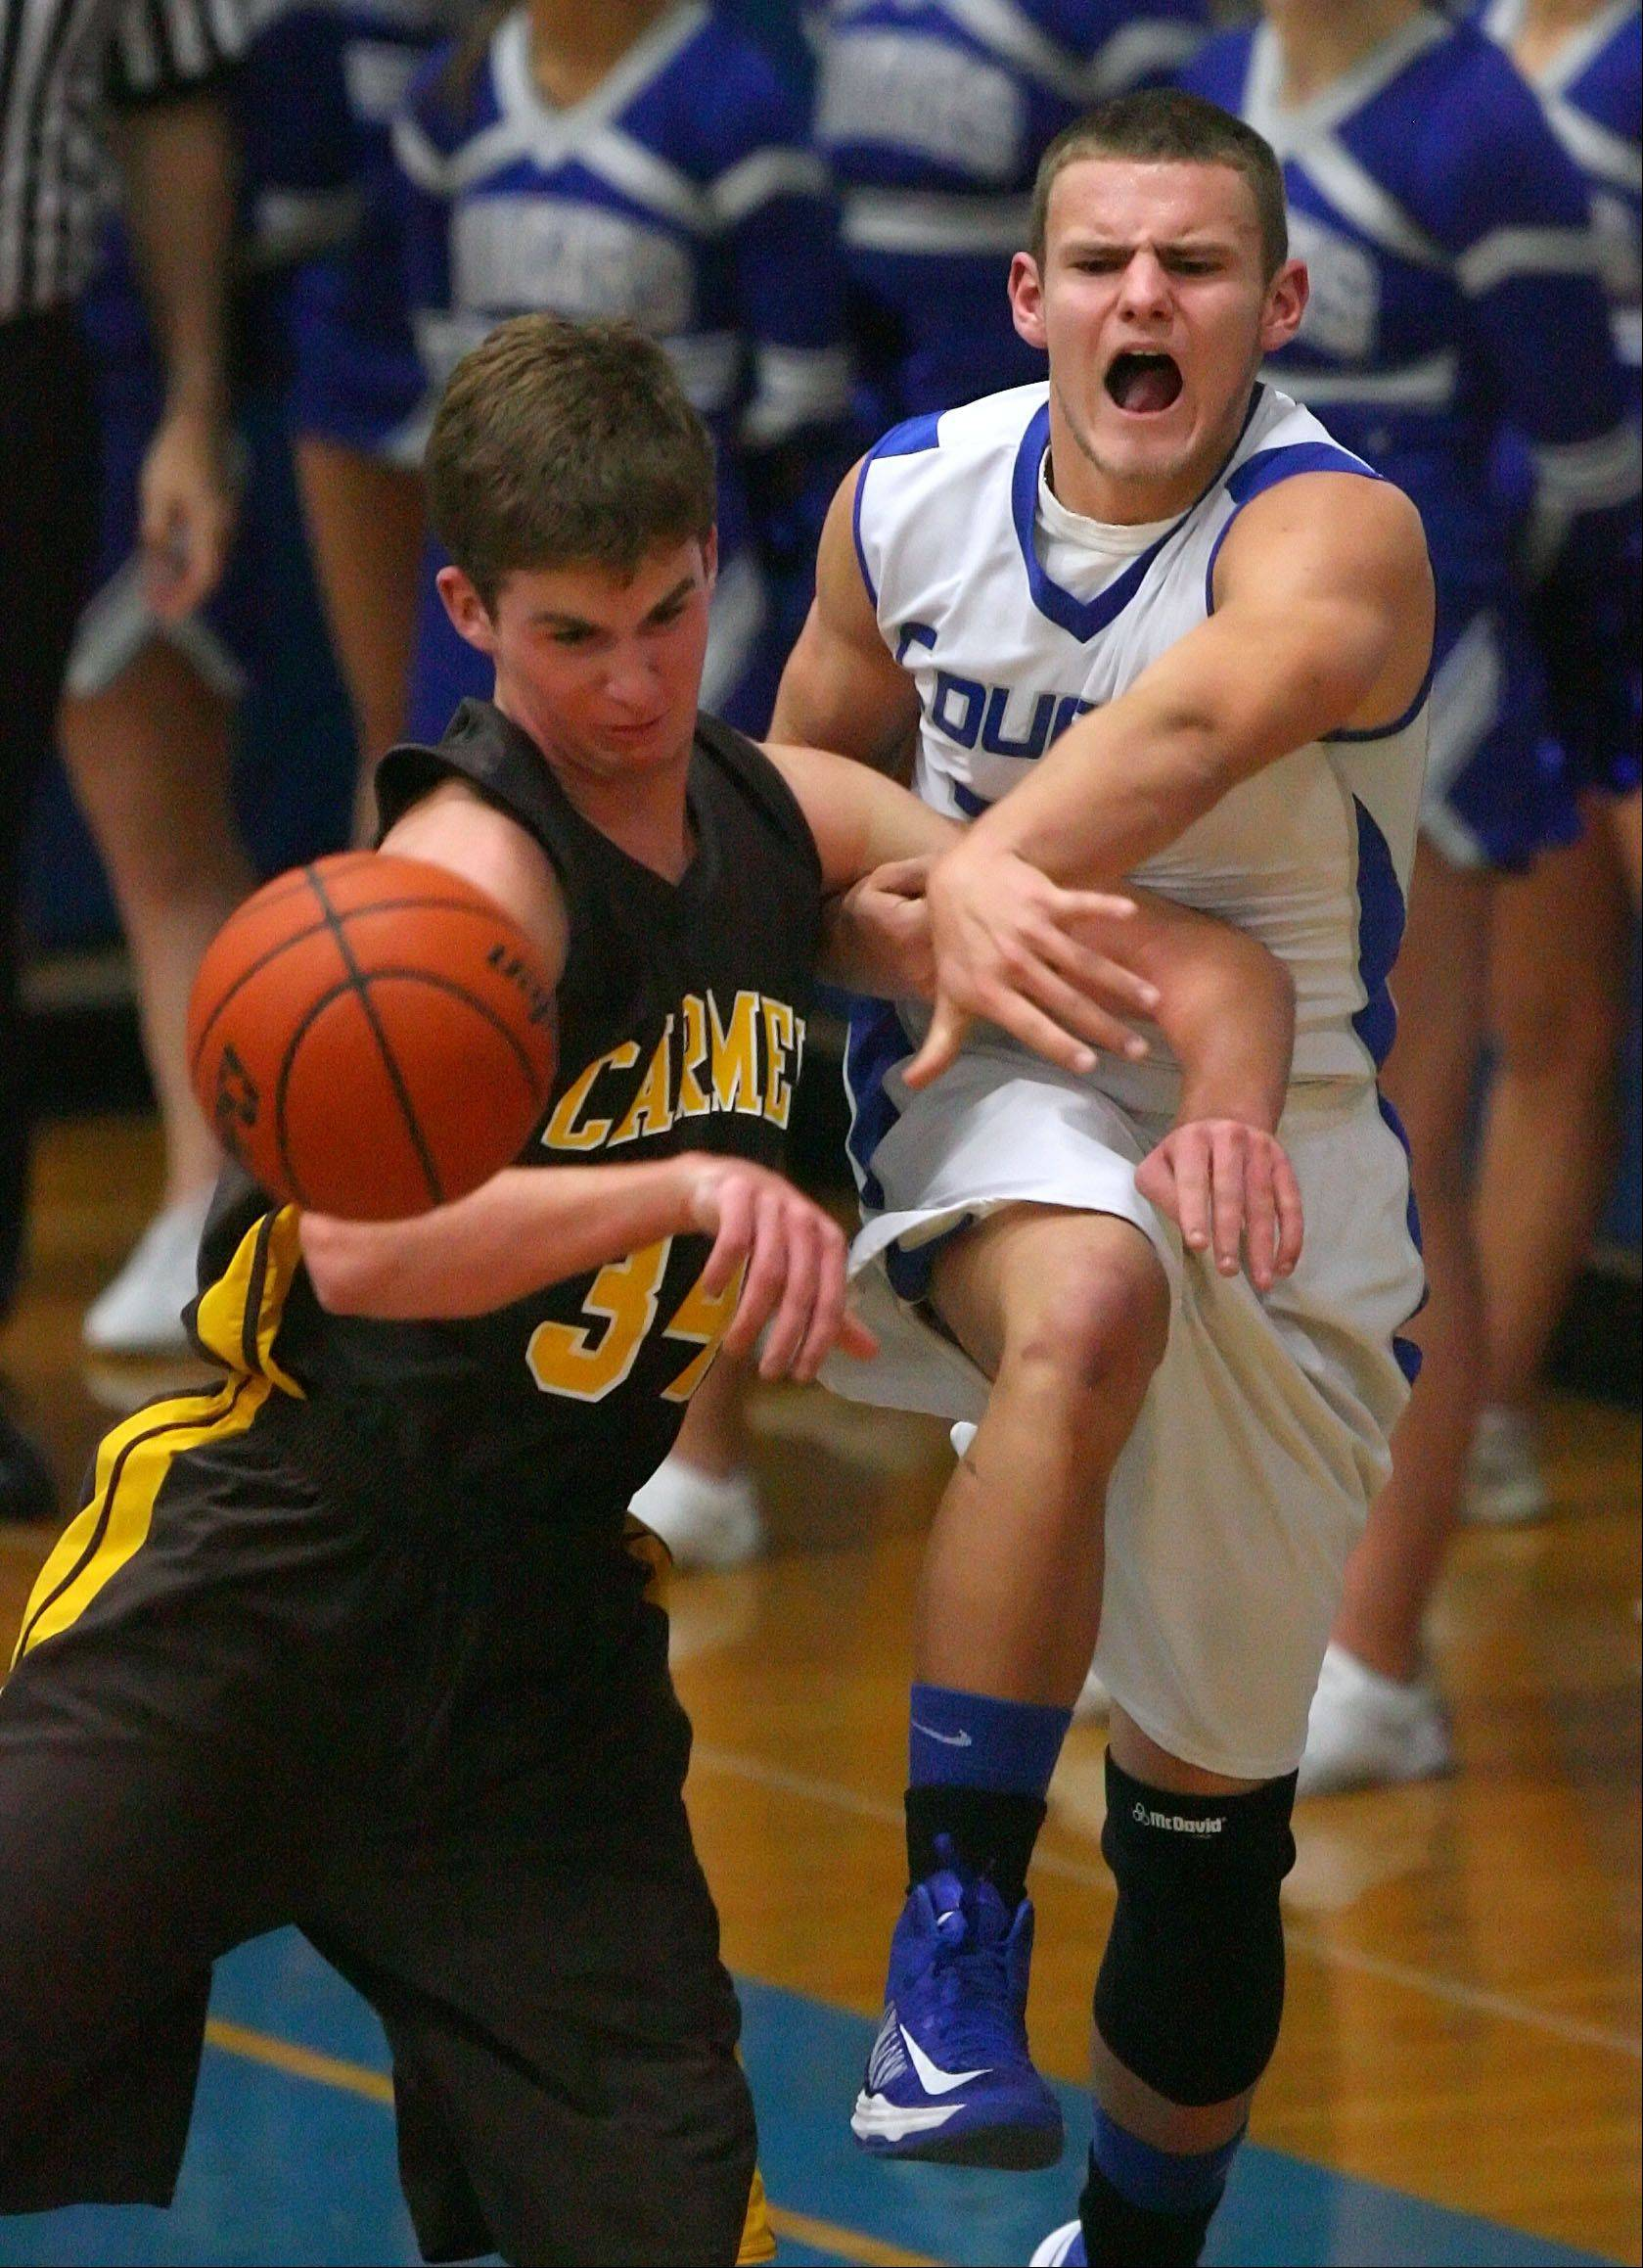 Carmel's Cullen Barr, left, and Vernon Hills' TJ Flis battle for a rebound.